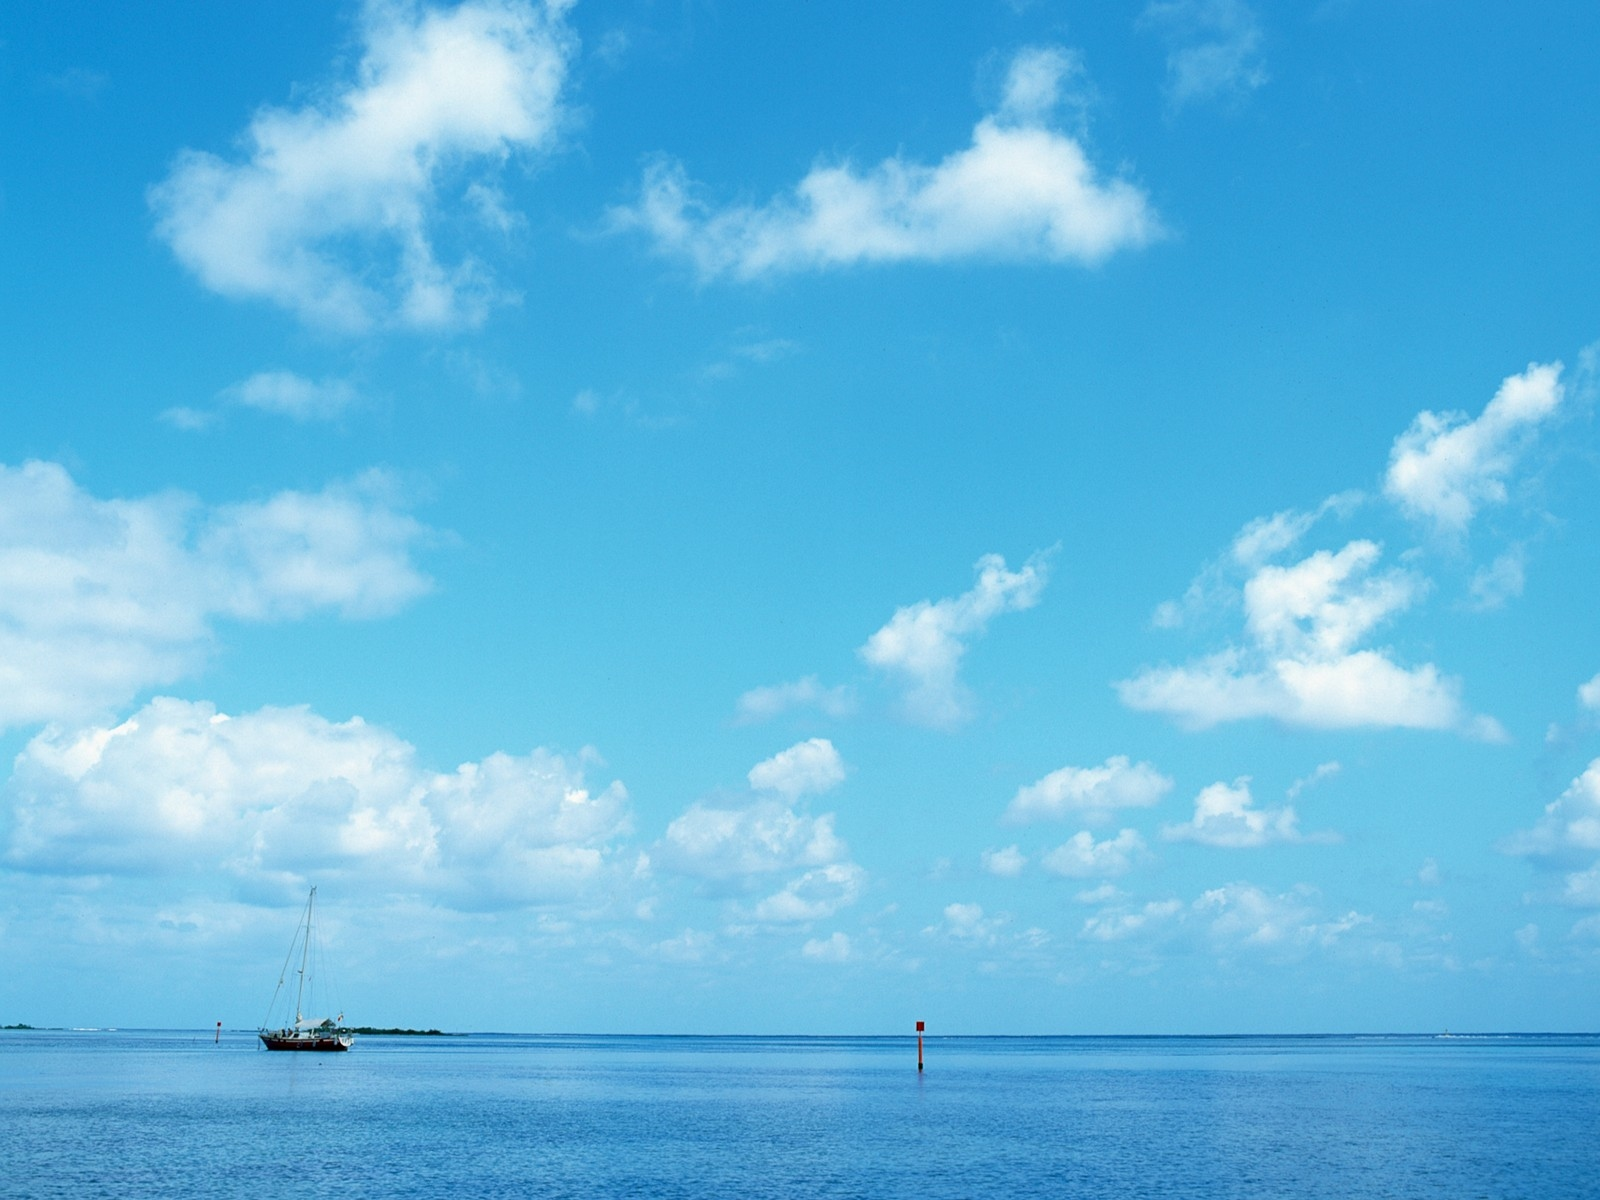 Hd 1600x1200 Sea And Clouds Desktop Wallpapers Backgrounds 1600x1200